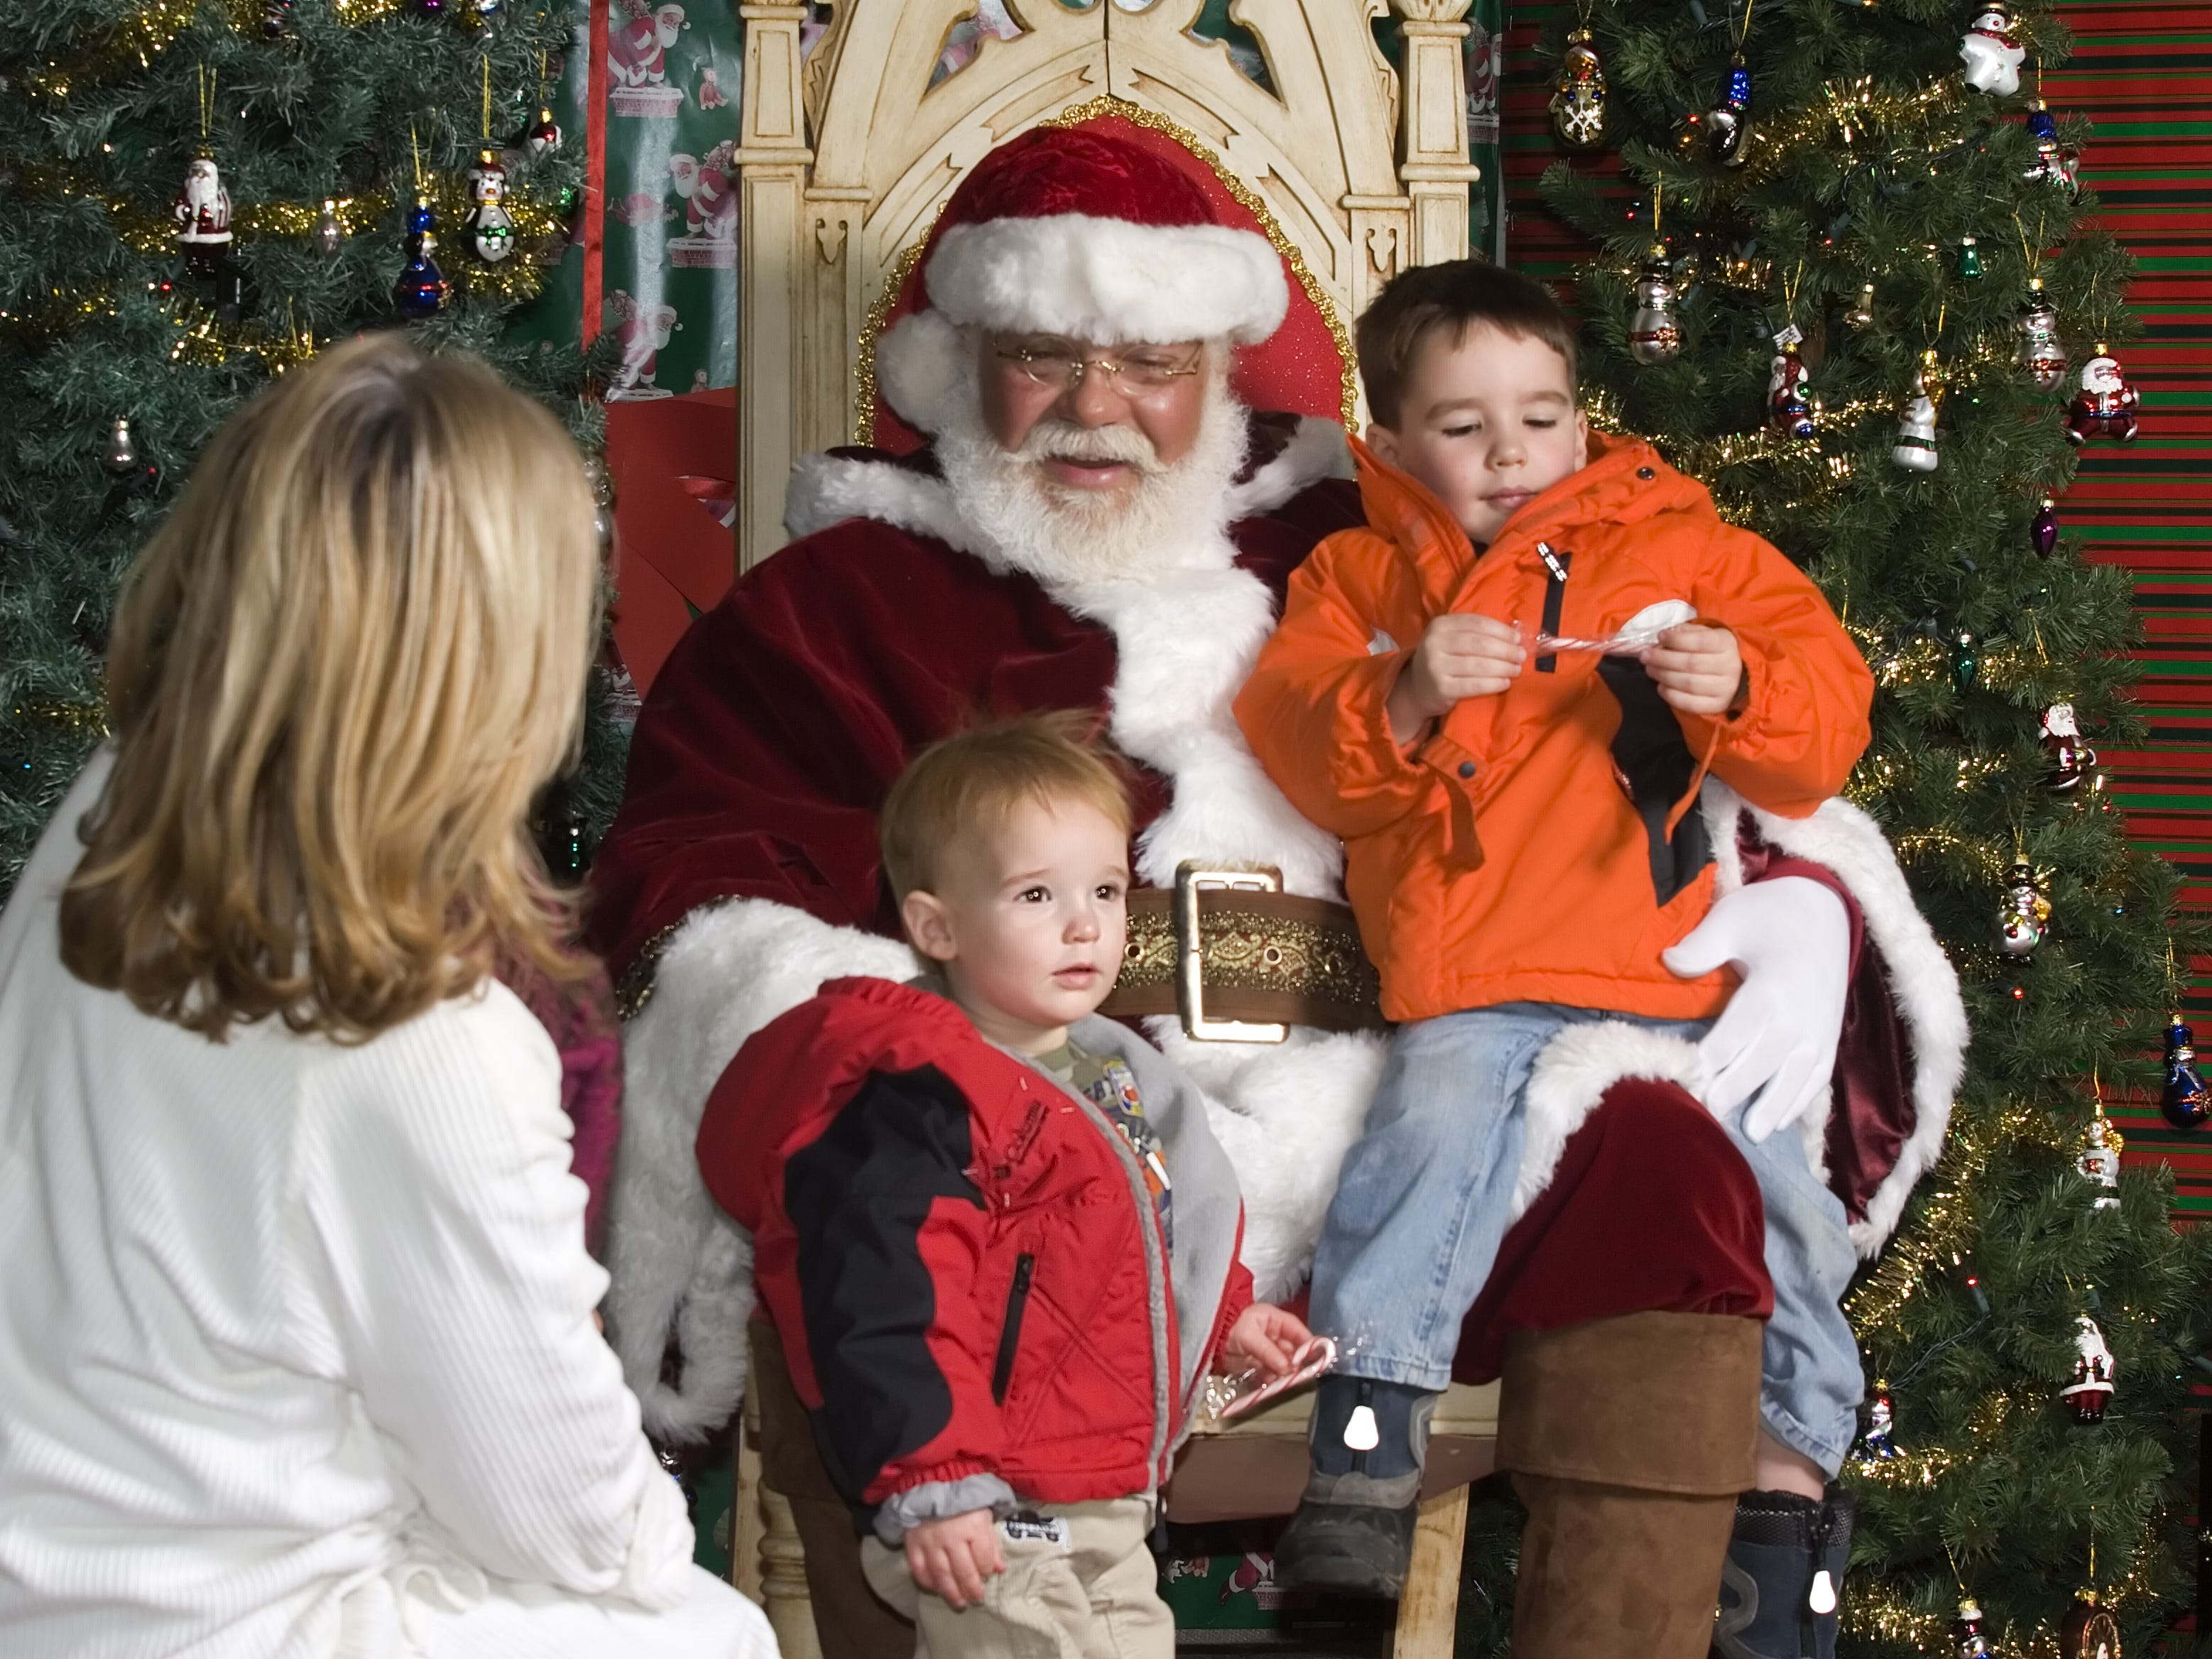 NEED YEAR Joy Brewer, 53, left, talks to her grandsons Nolan Brewer, 1, and Alden Brewer, 3, both of Elmira, as they pose for a photograph with Santa Claus on Friday at 109 North Main Street in Elmira. The Elmira-based photo studio LaVere Media offered photos with Santa after the parade.